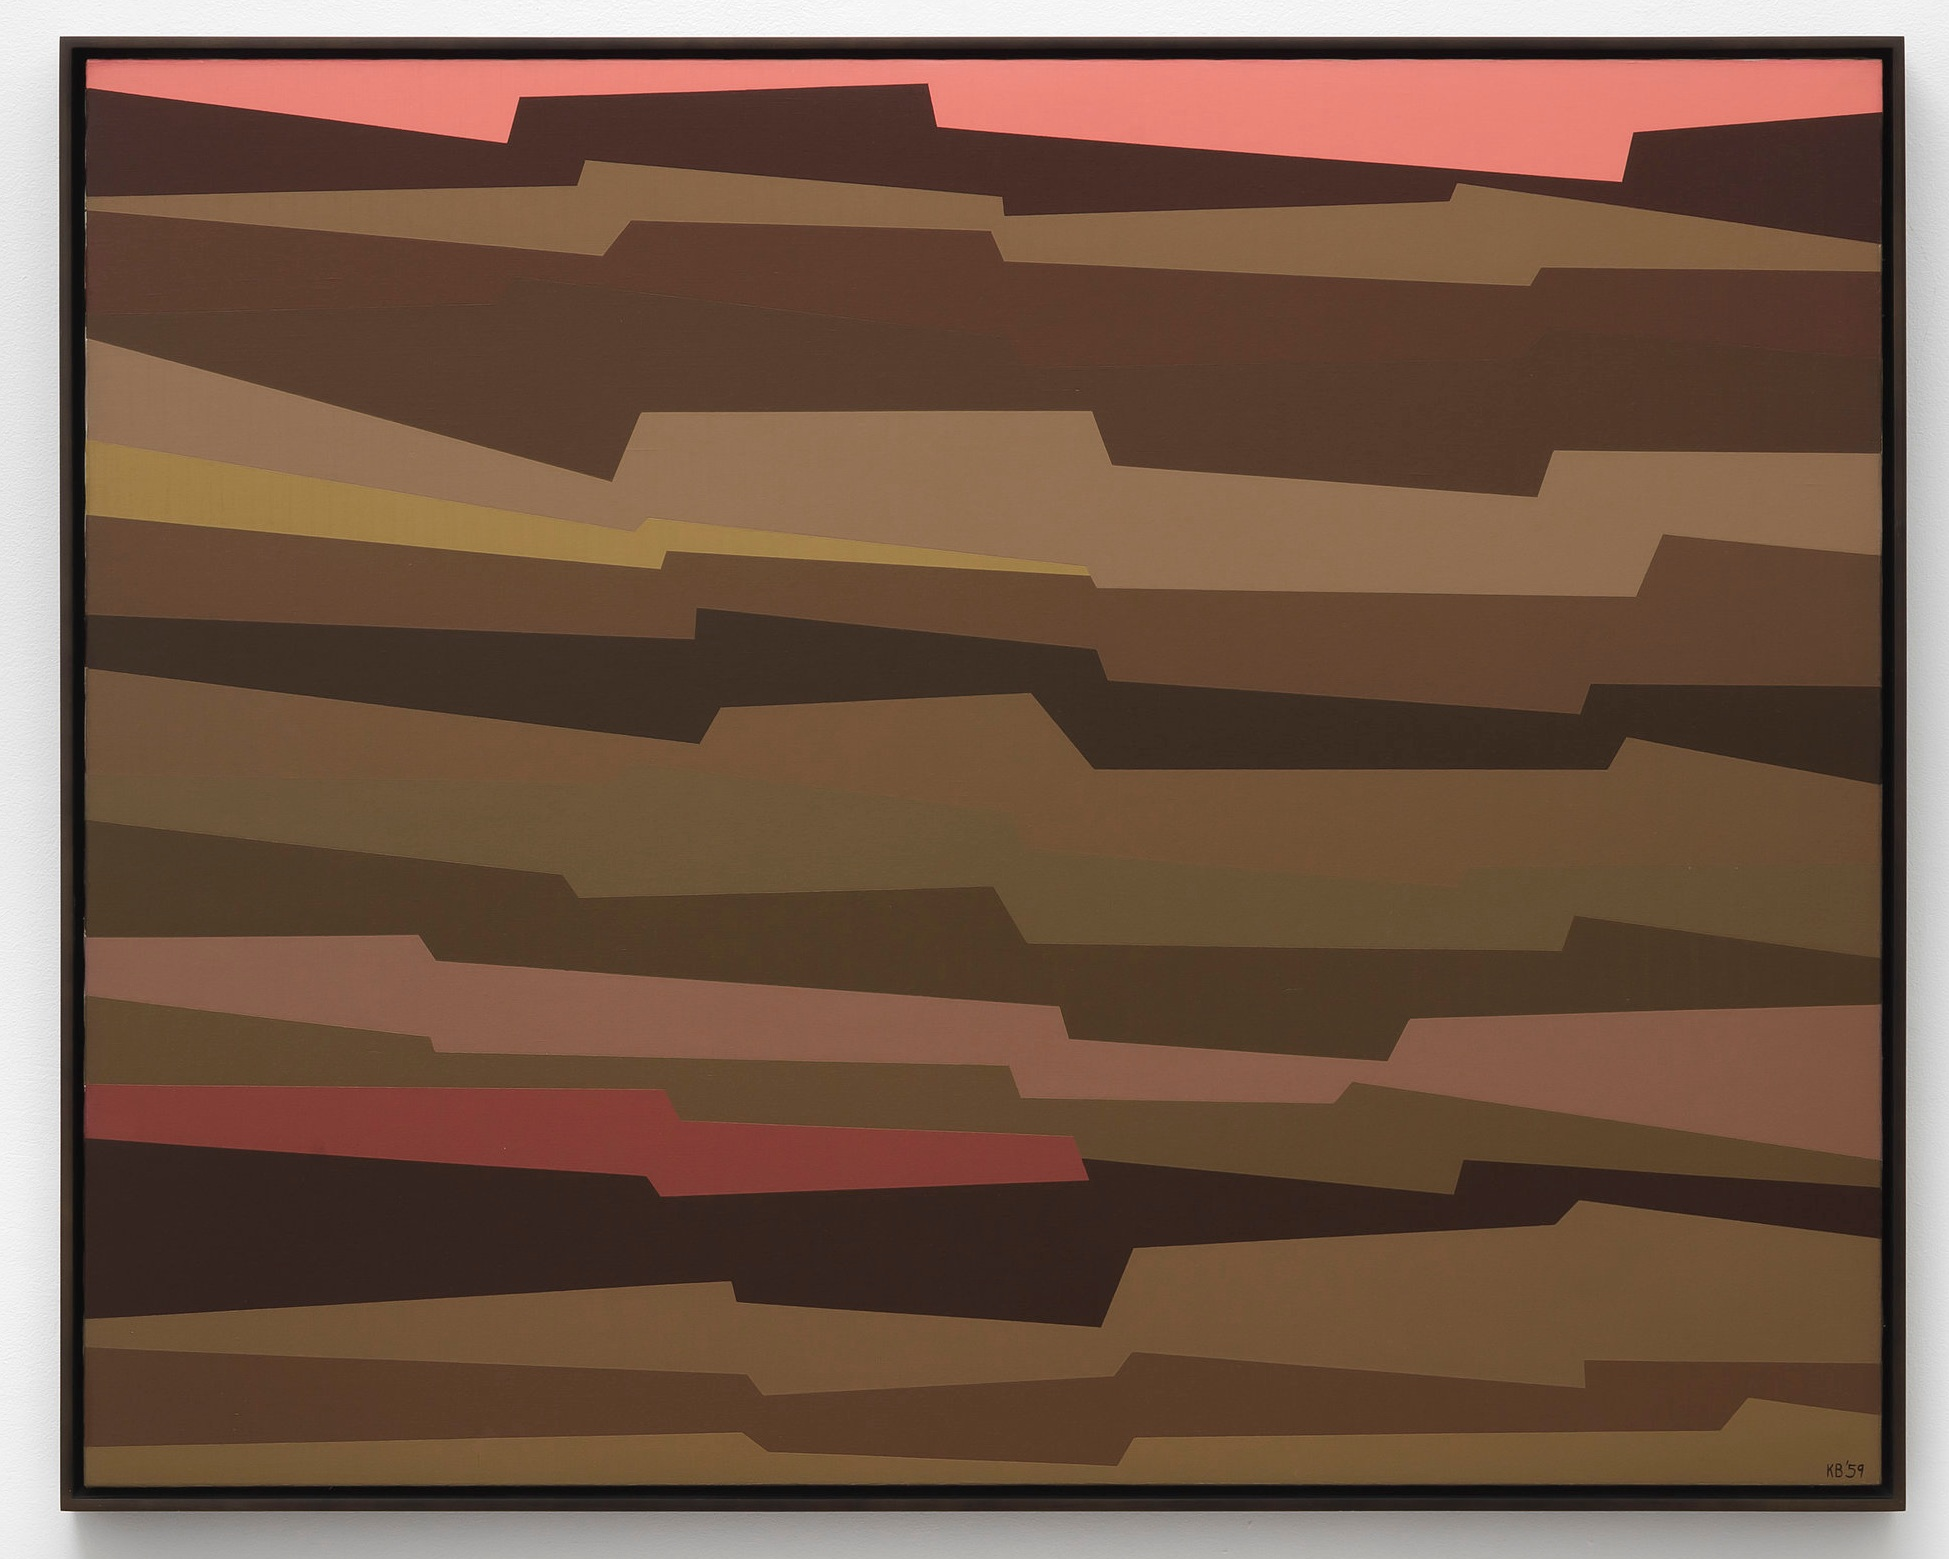 Interlocking Forms (amber, umber, yellow, crimson) , 1959  oil on canvas 40 x 50 inches; 101.6 x 127 centimeters